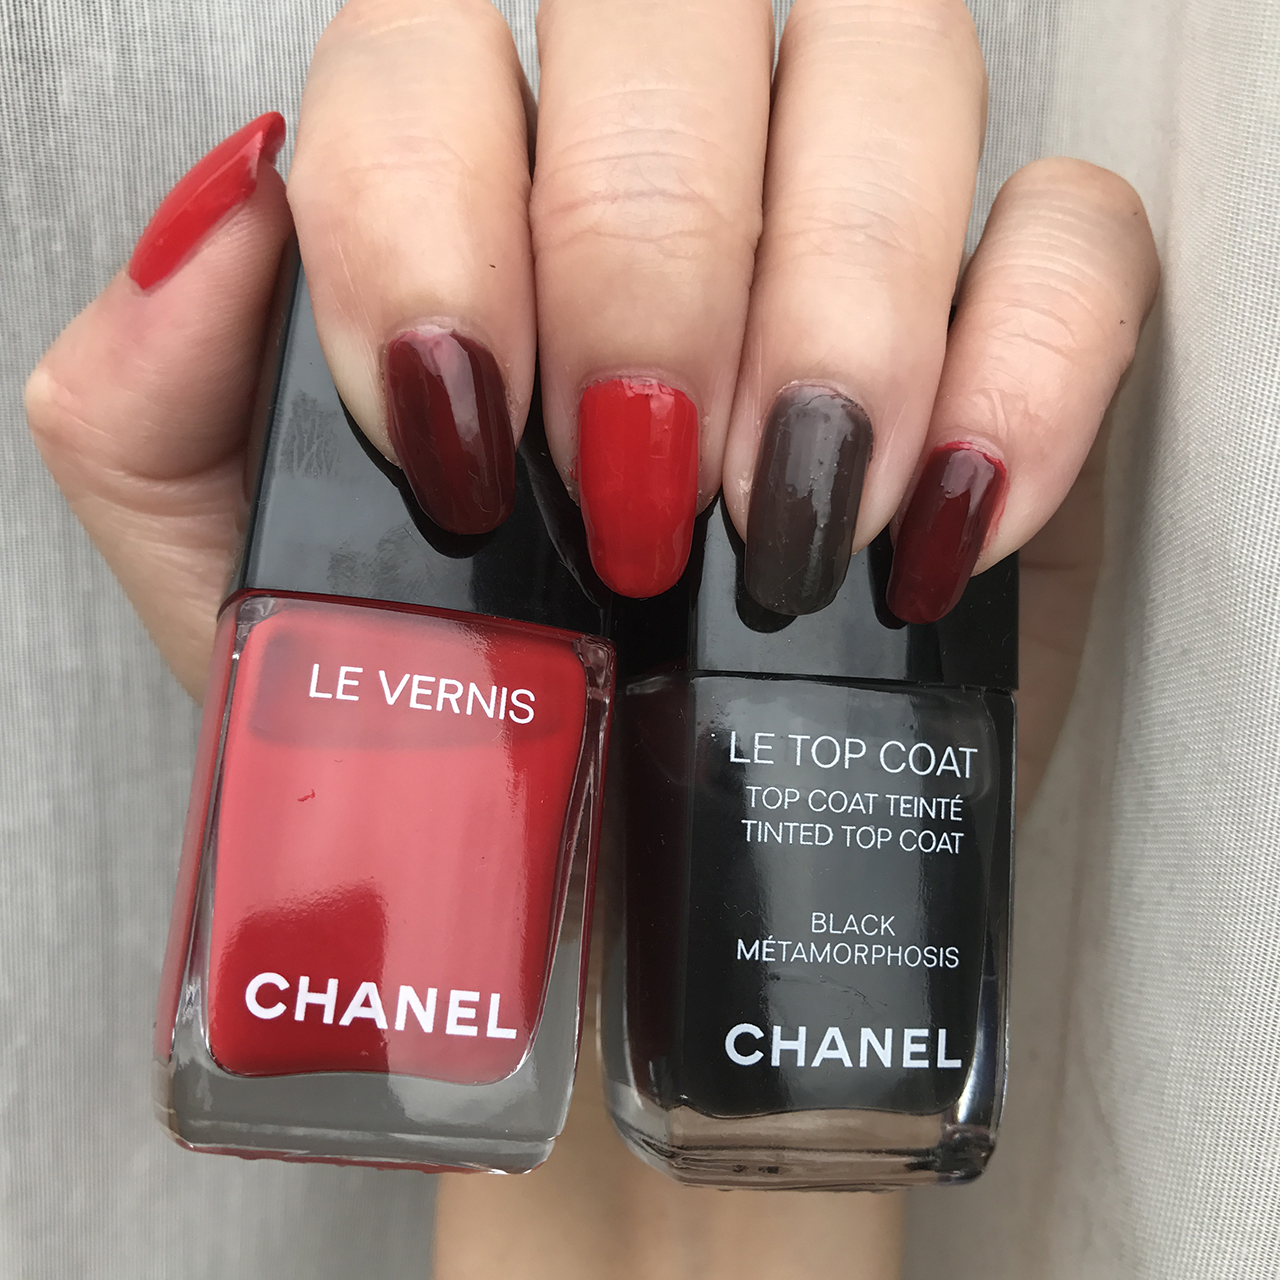 Chanel Le Vernis Rouge Red & Le Top Coat Black Metamorphosis